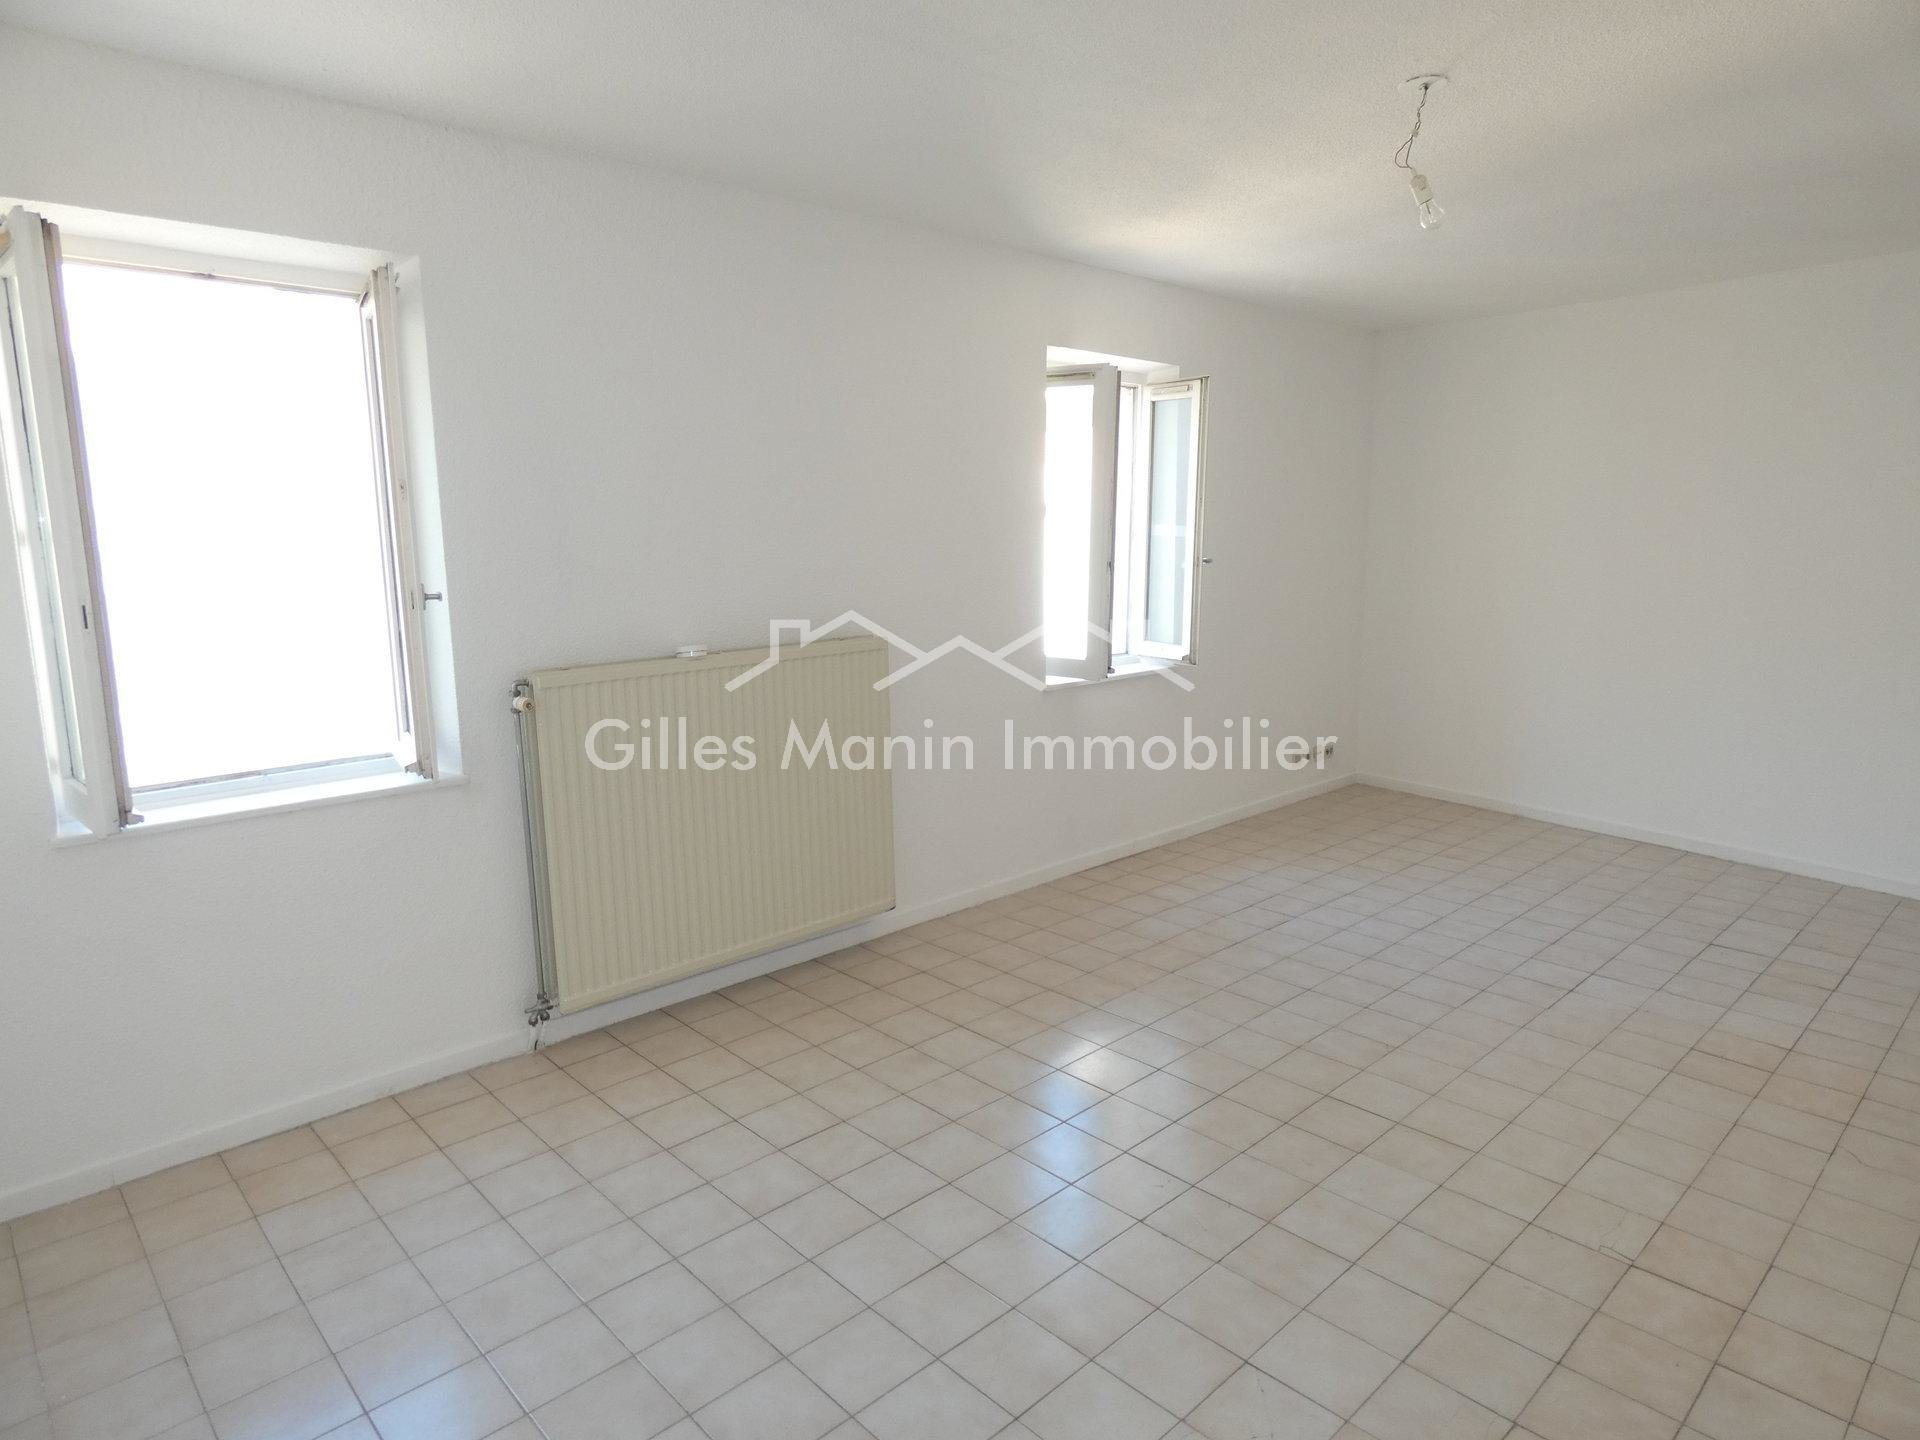 Sale Apartment - Avignon Intra-muros